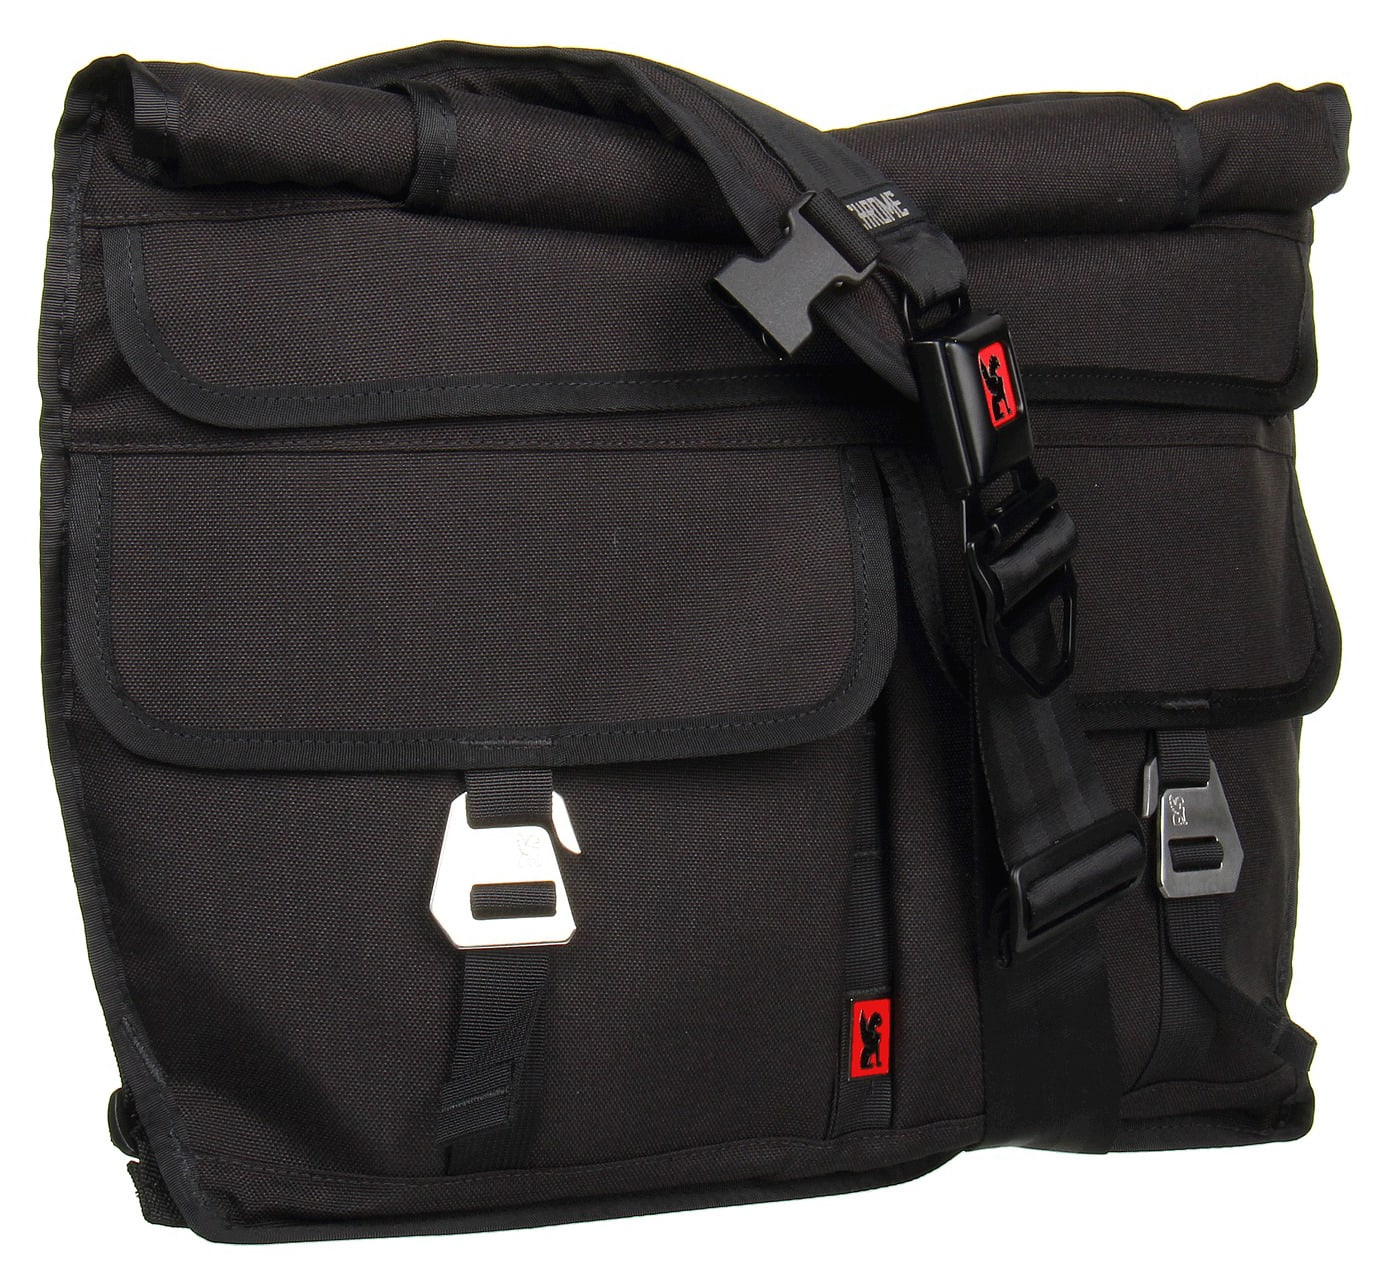 Chrome Lieutenant Messenger Bag Black 26L